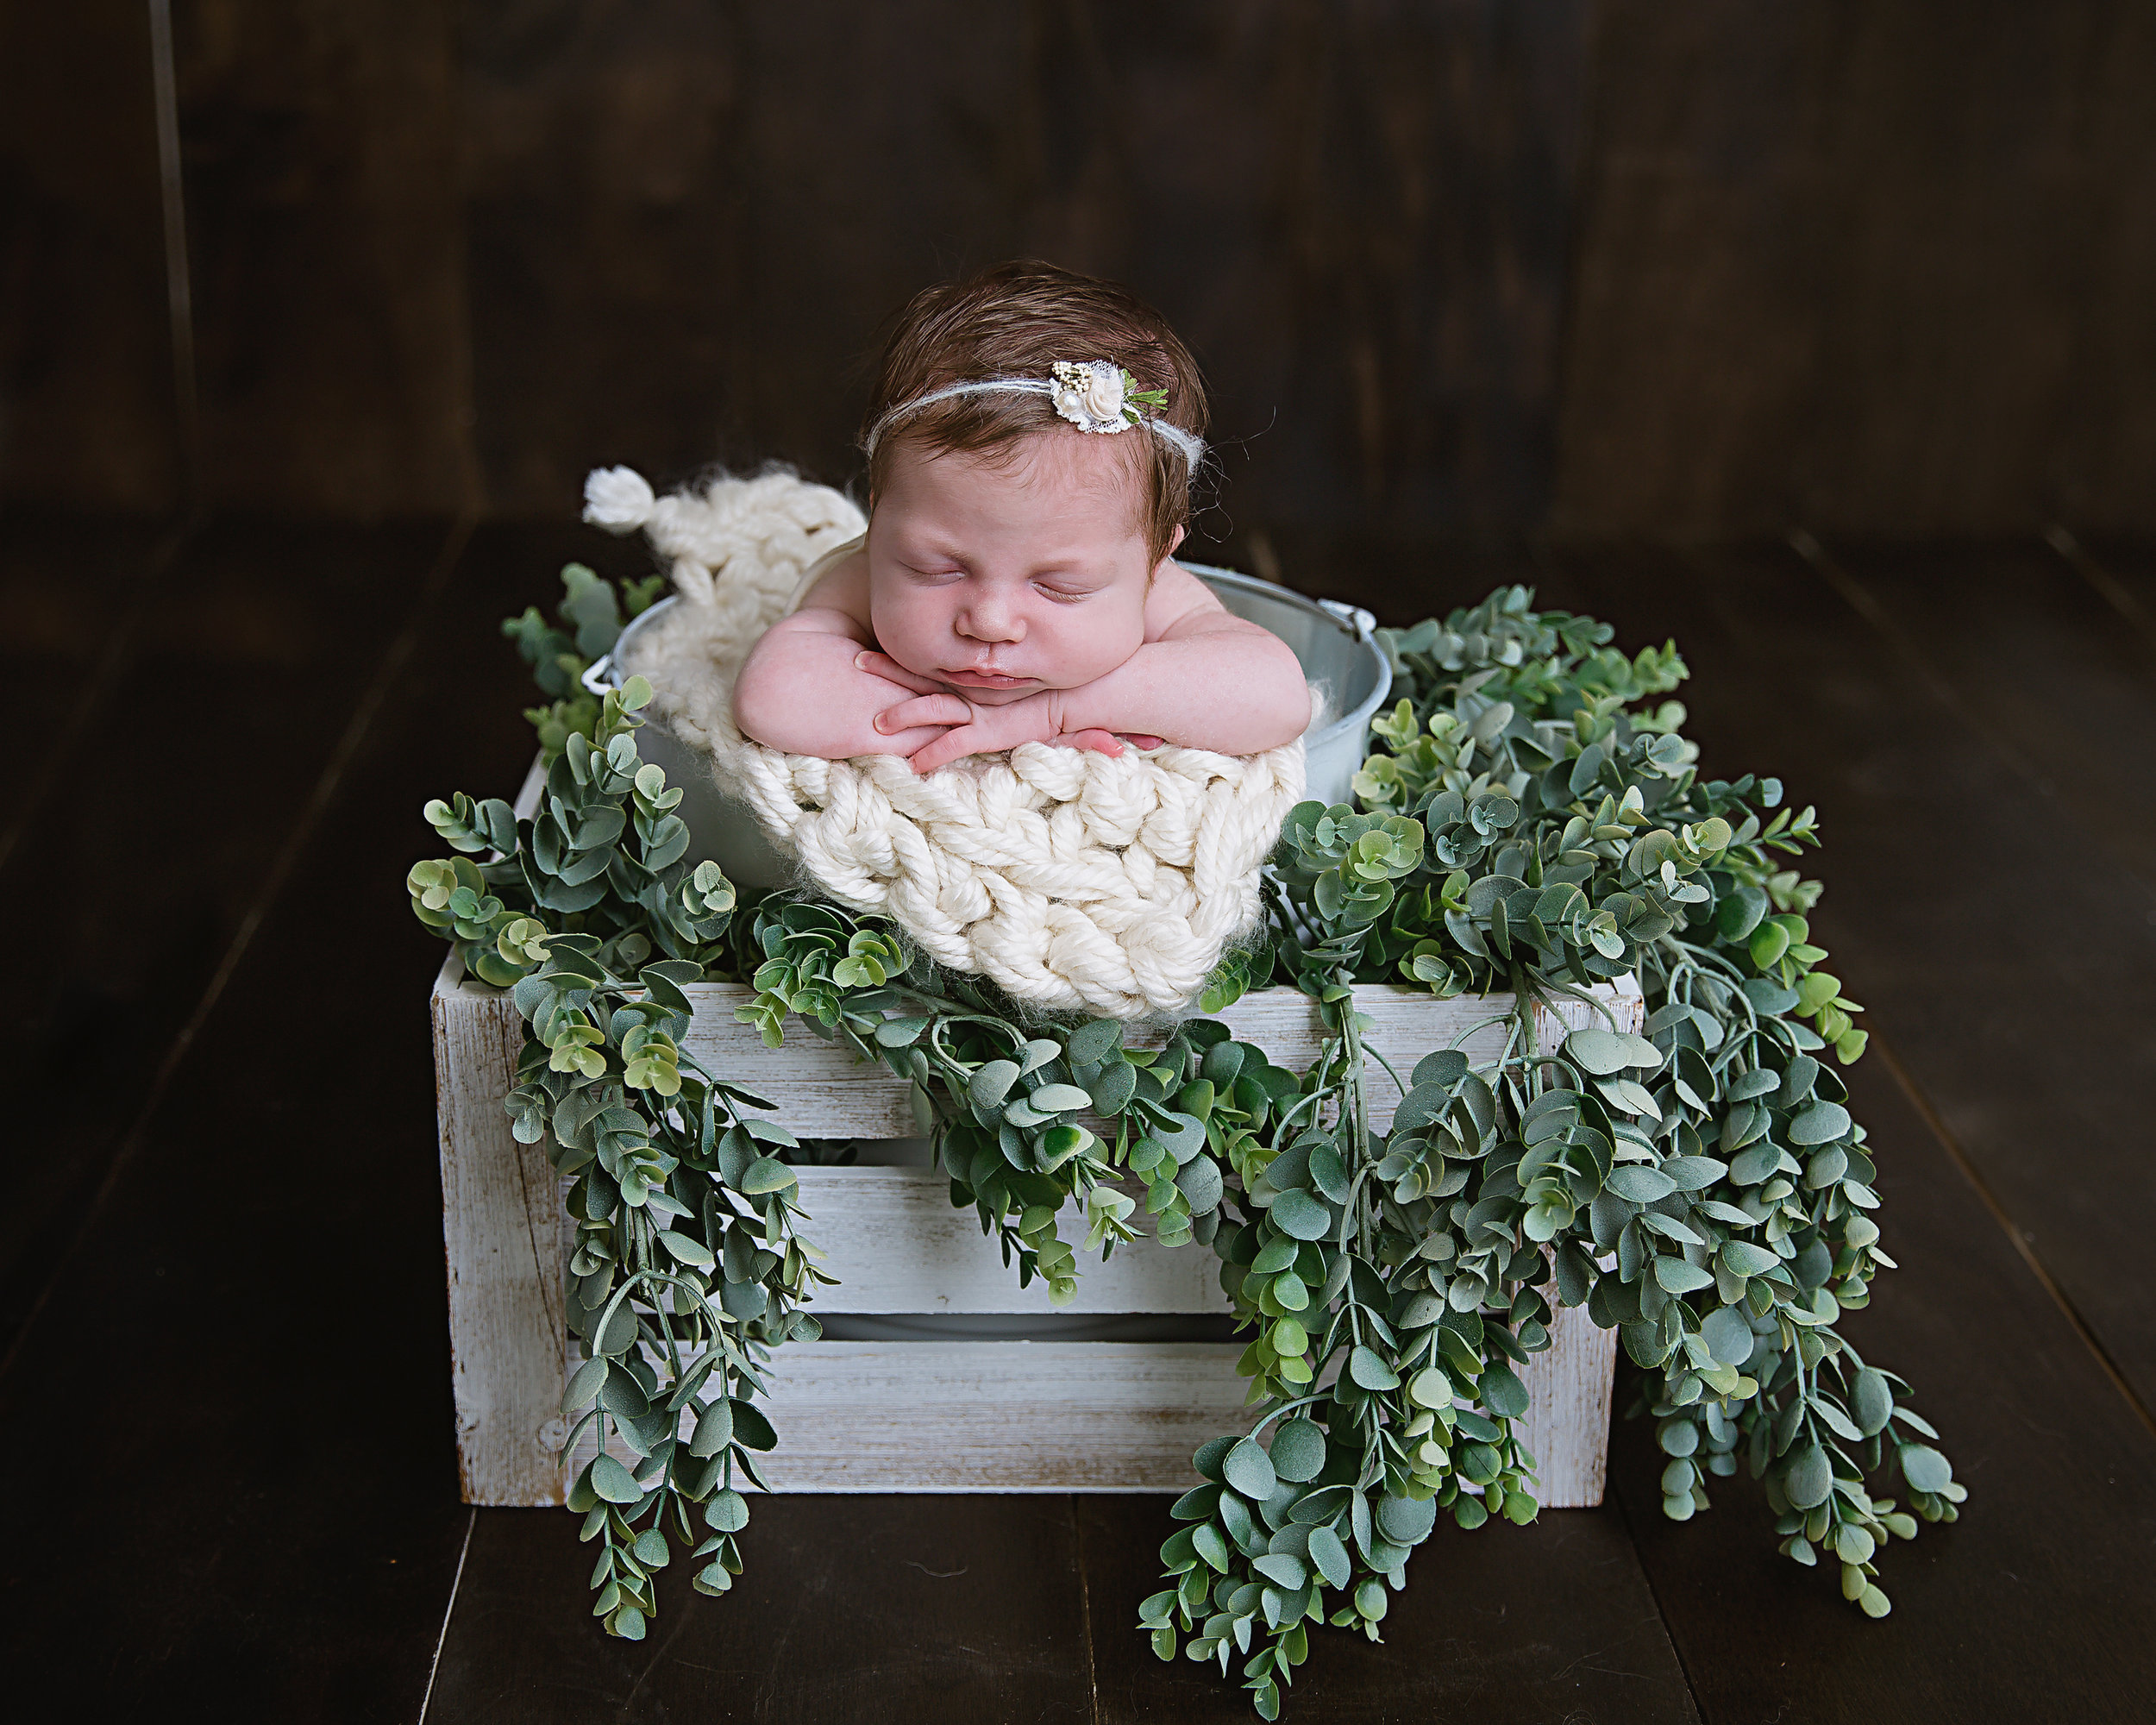 newborn-baby-girl-photography-shoot-lying-on-blanket-and-box-of-natural-greenery-black-background-new-jersey